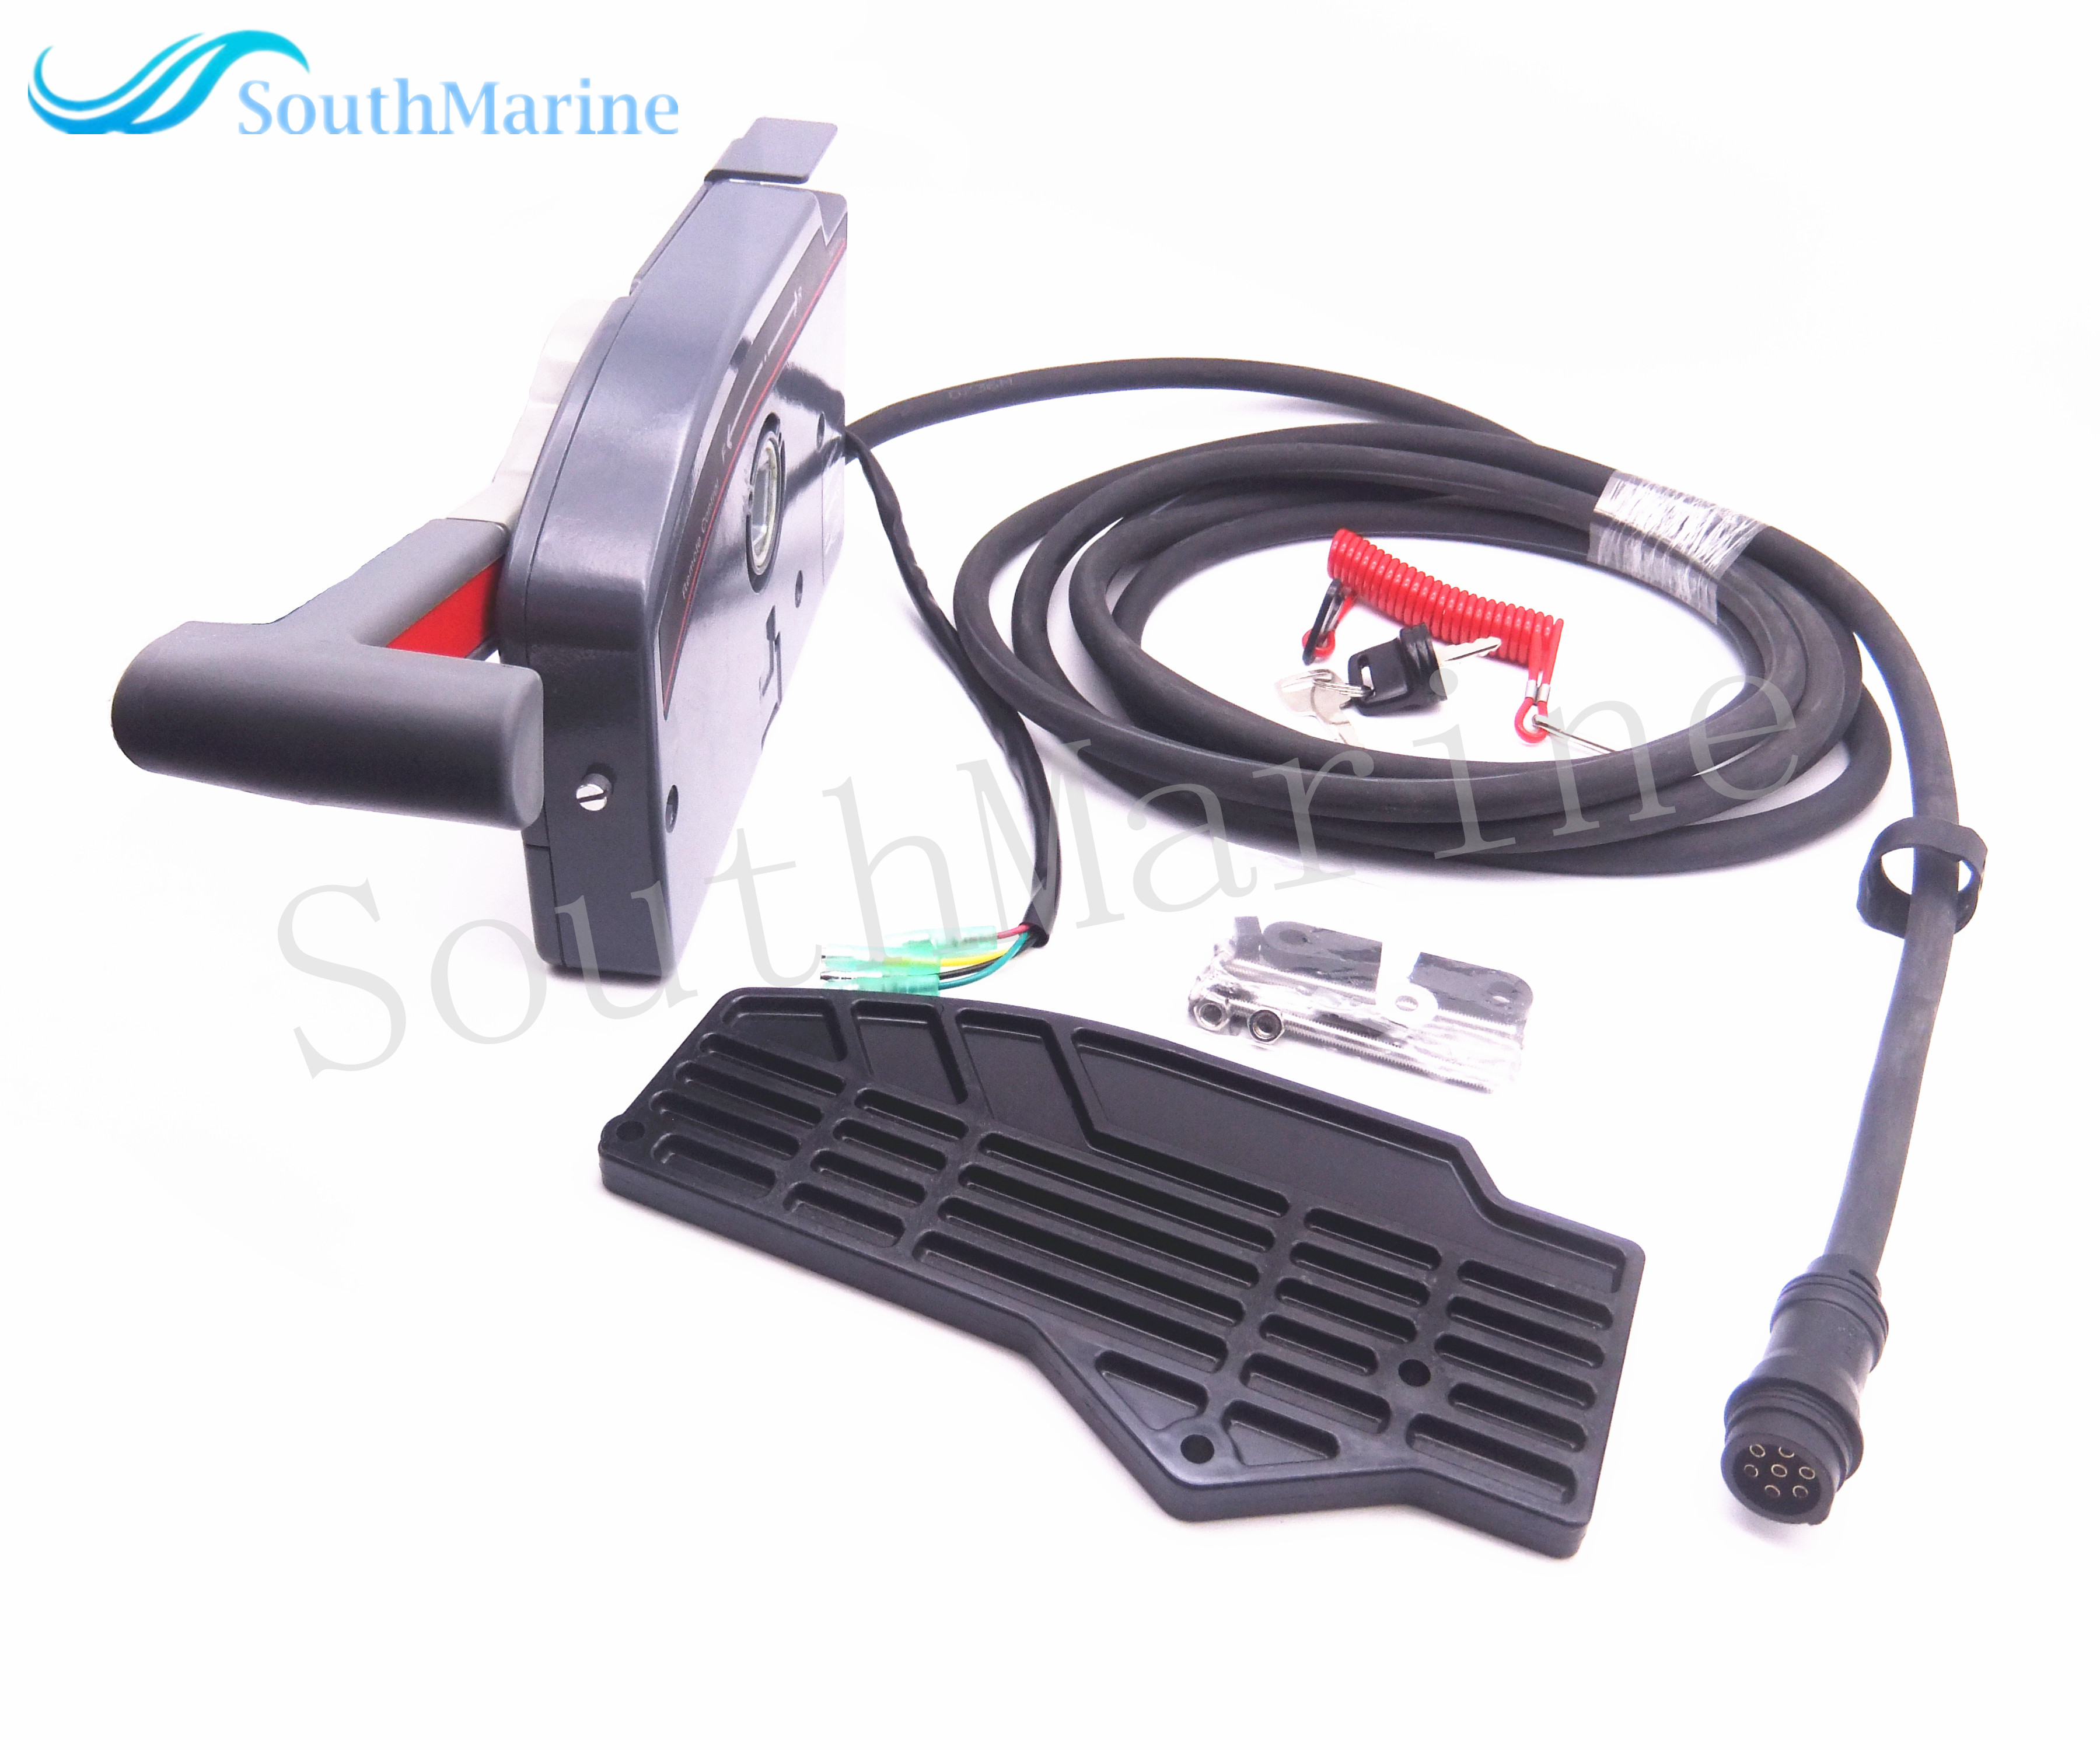 Outboard Engine Remote Control Box Assy 703-48230-14 703-48203-15 703-48203-17 For Yamaha Boat Motor,7 Pins Left Side Push